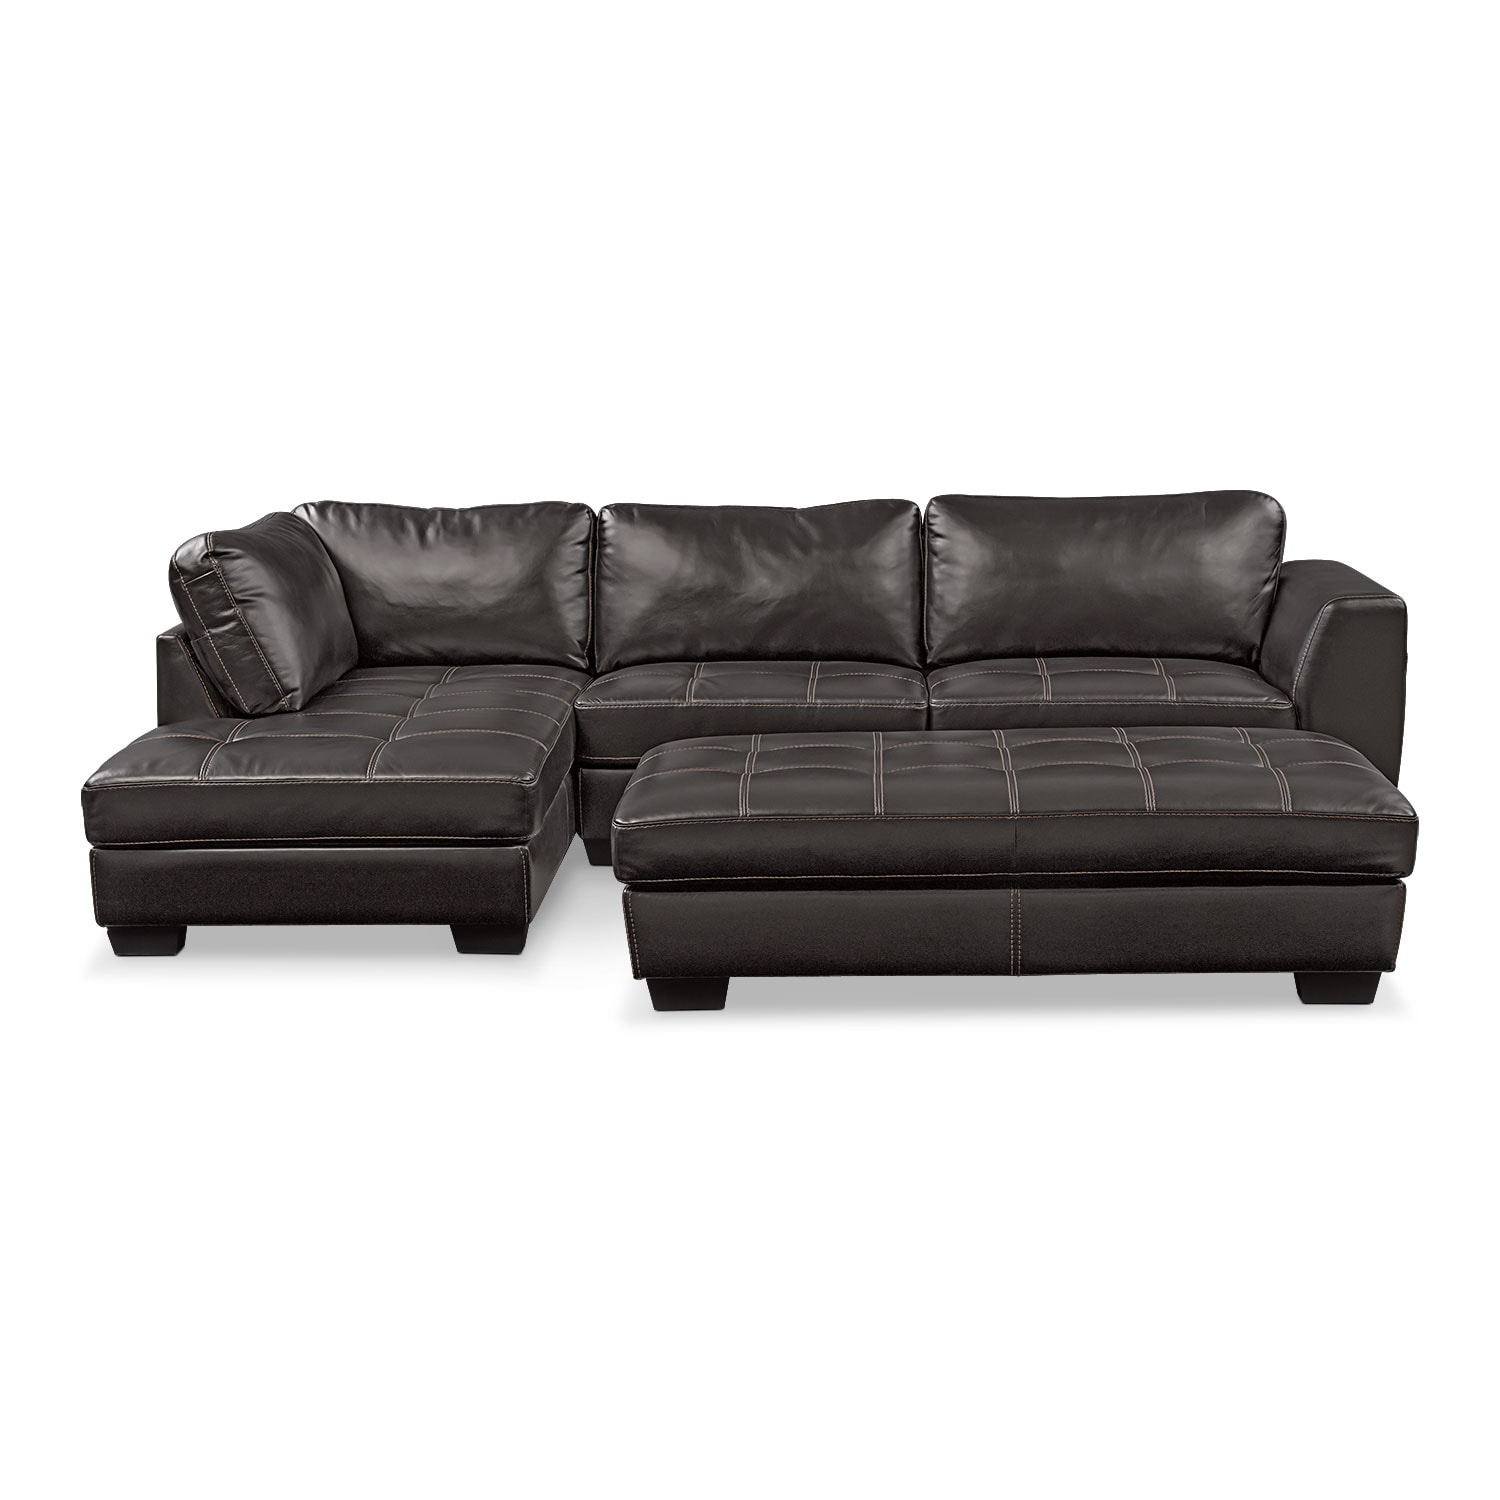 Living Room Furniture - Santana 2-Piece Sectional with Left-Facing Chaise Plus FREE Cocktail Ottoman - Black